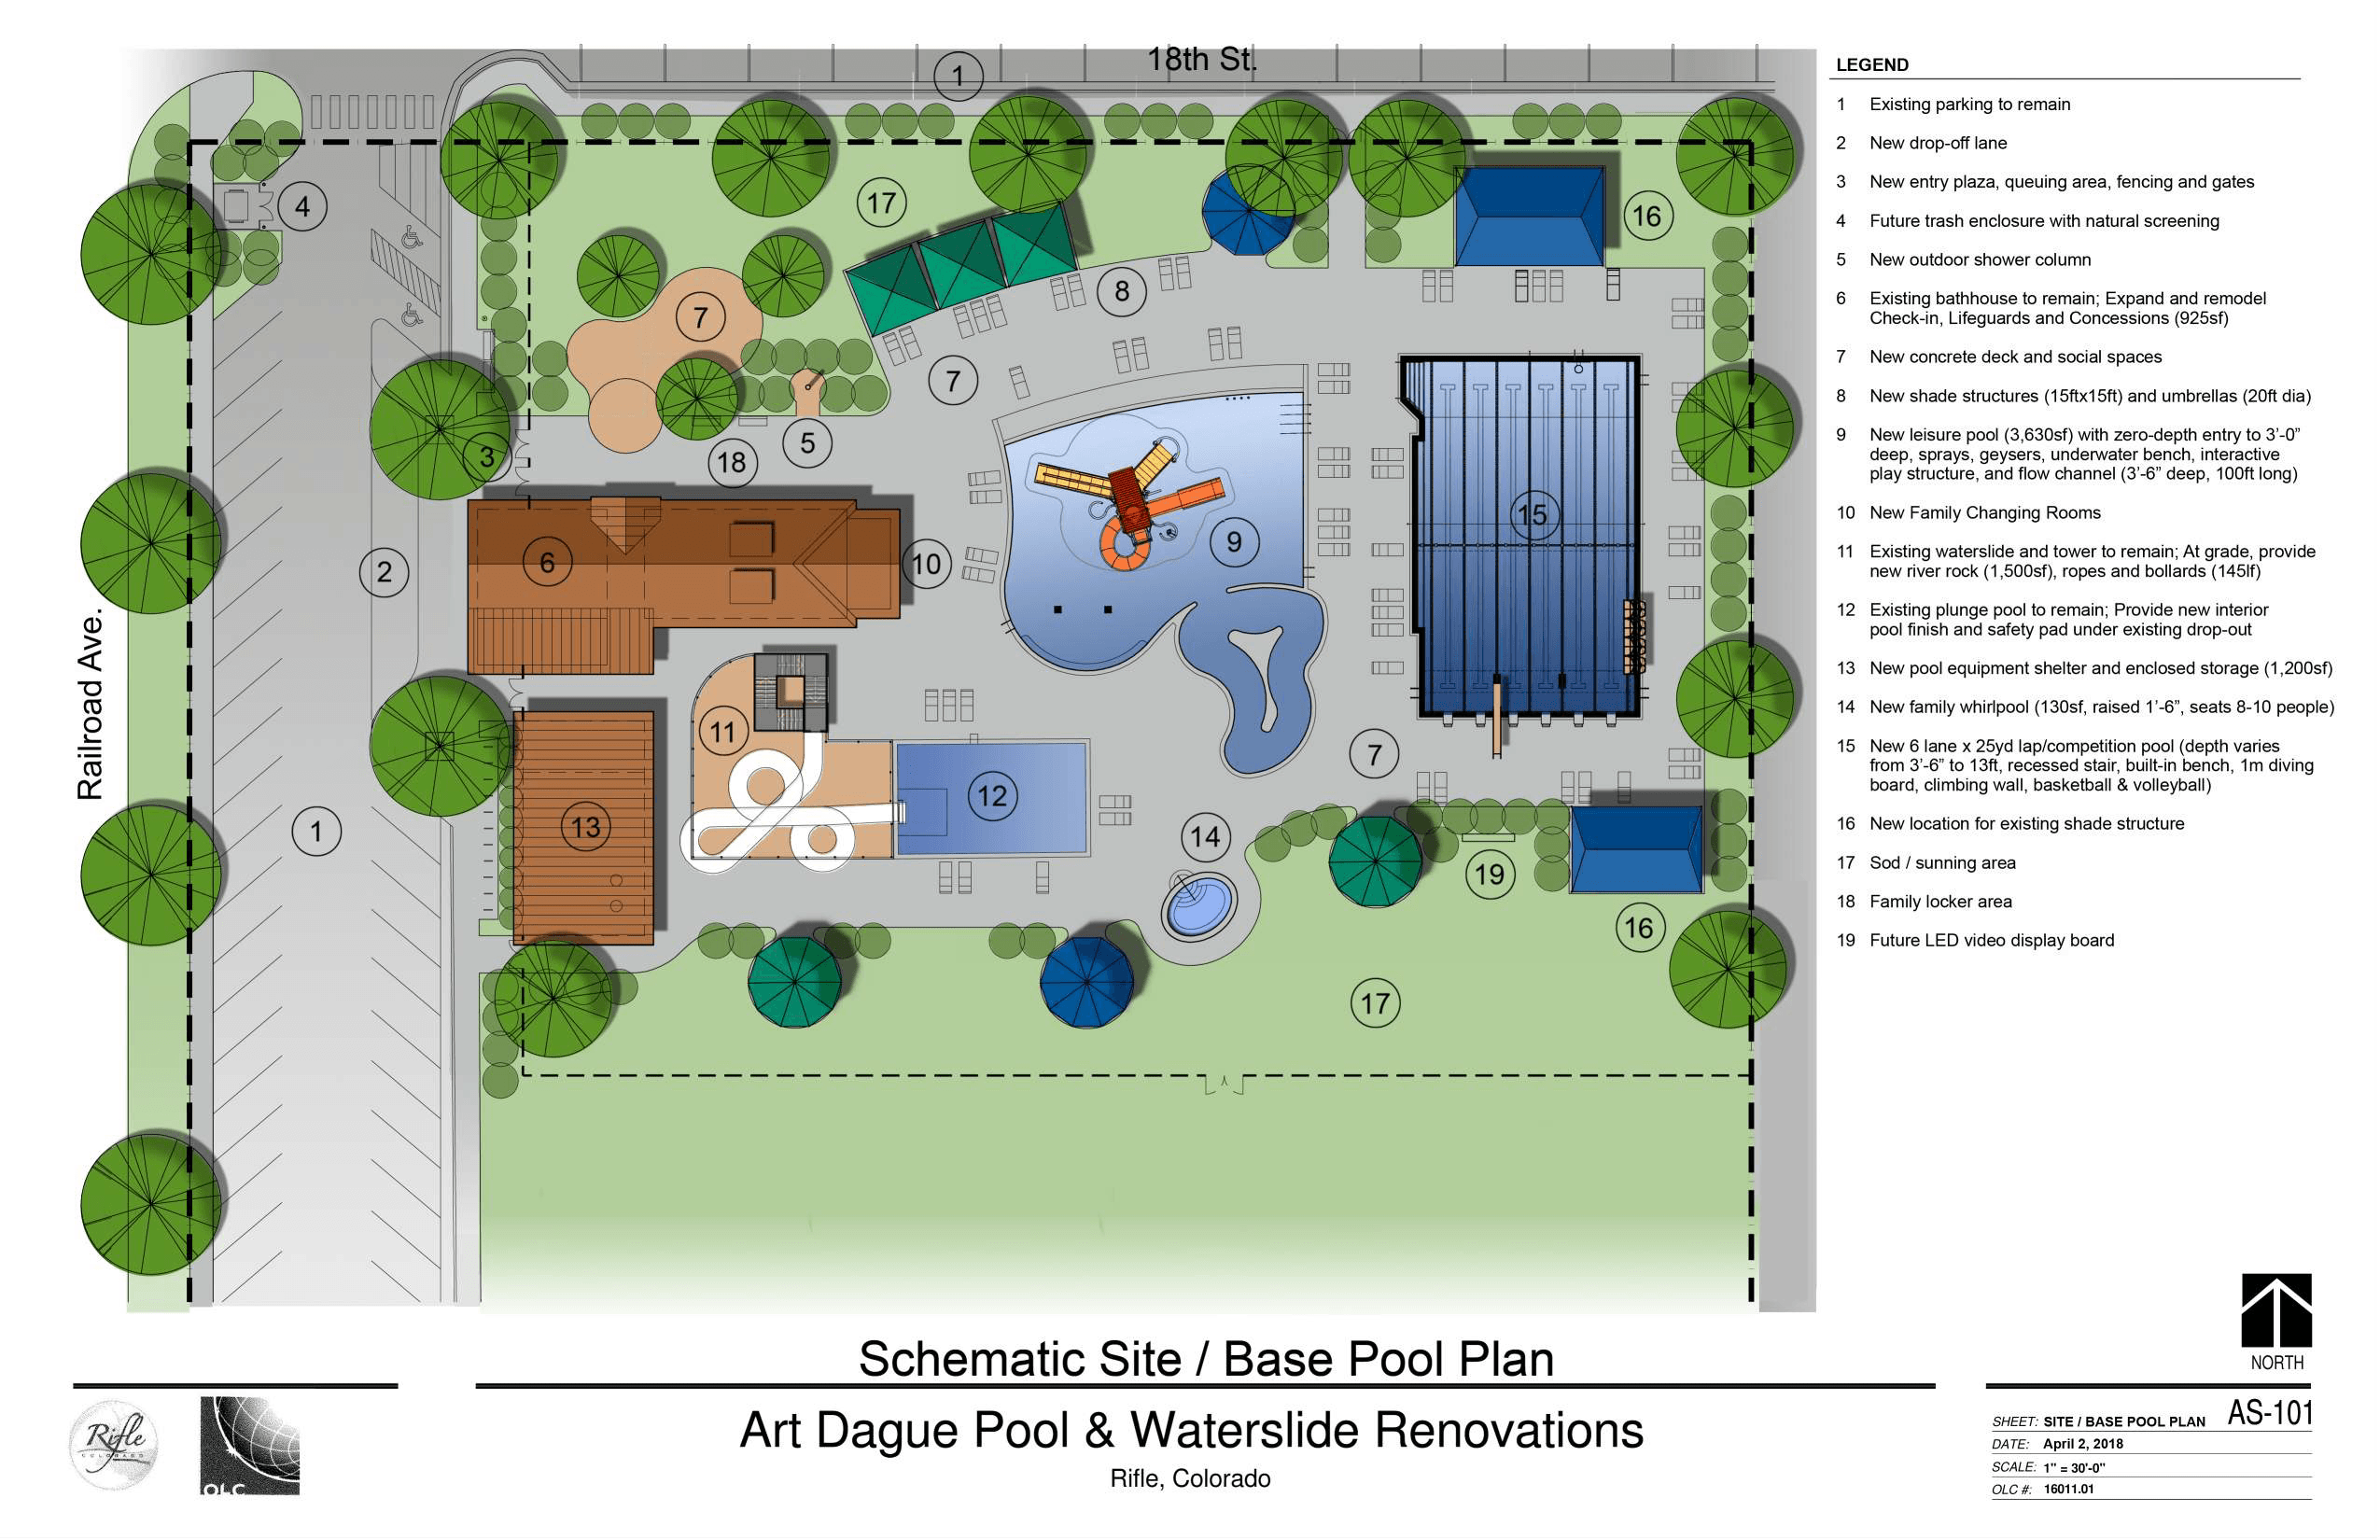 Rifle_Site-Base Pool Plan_4-2-18